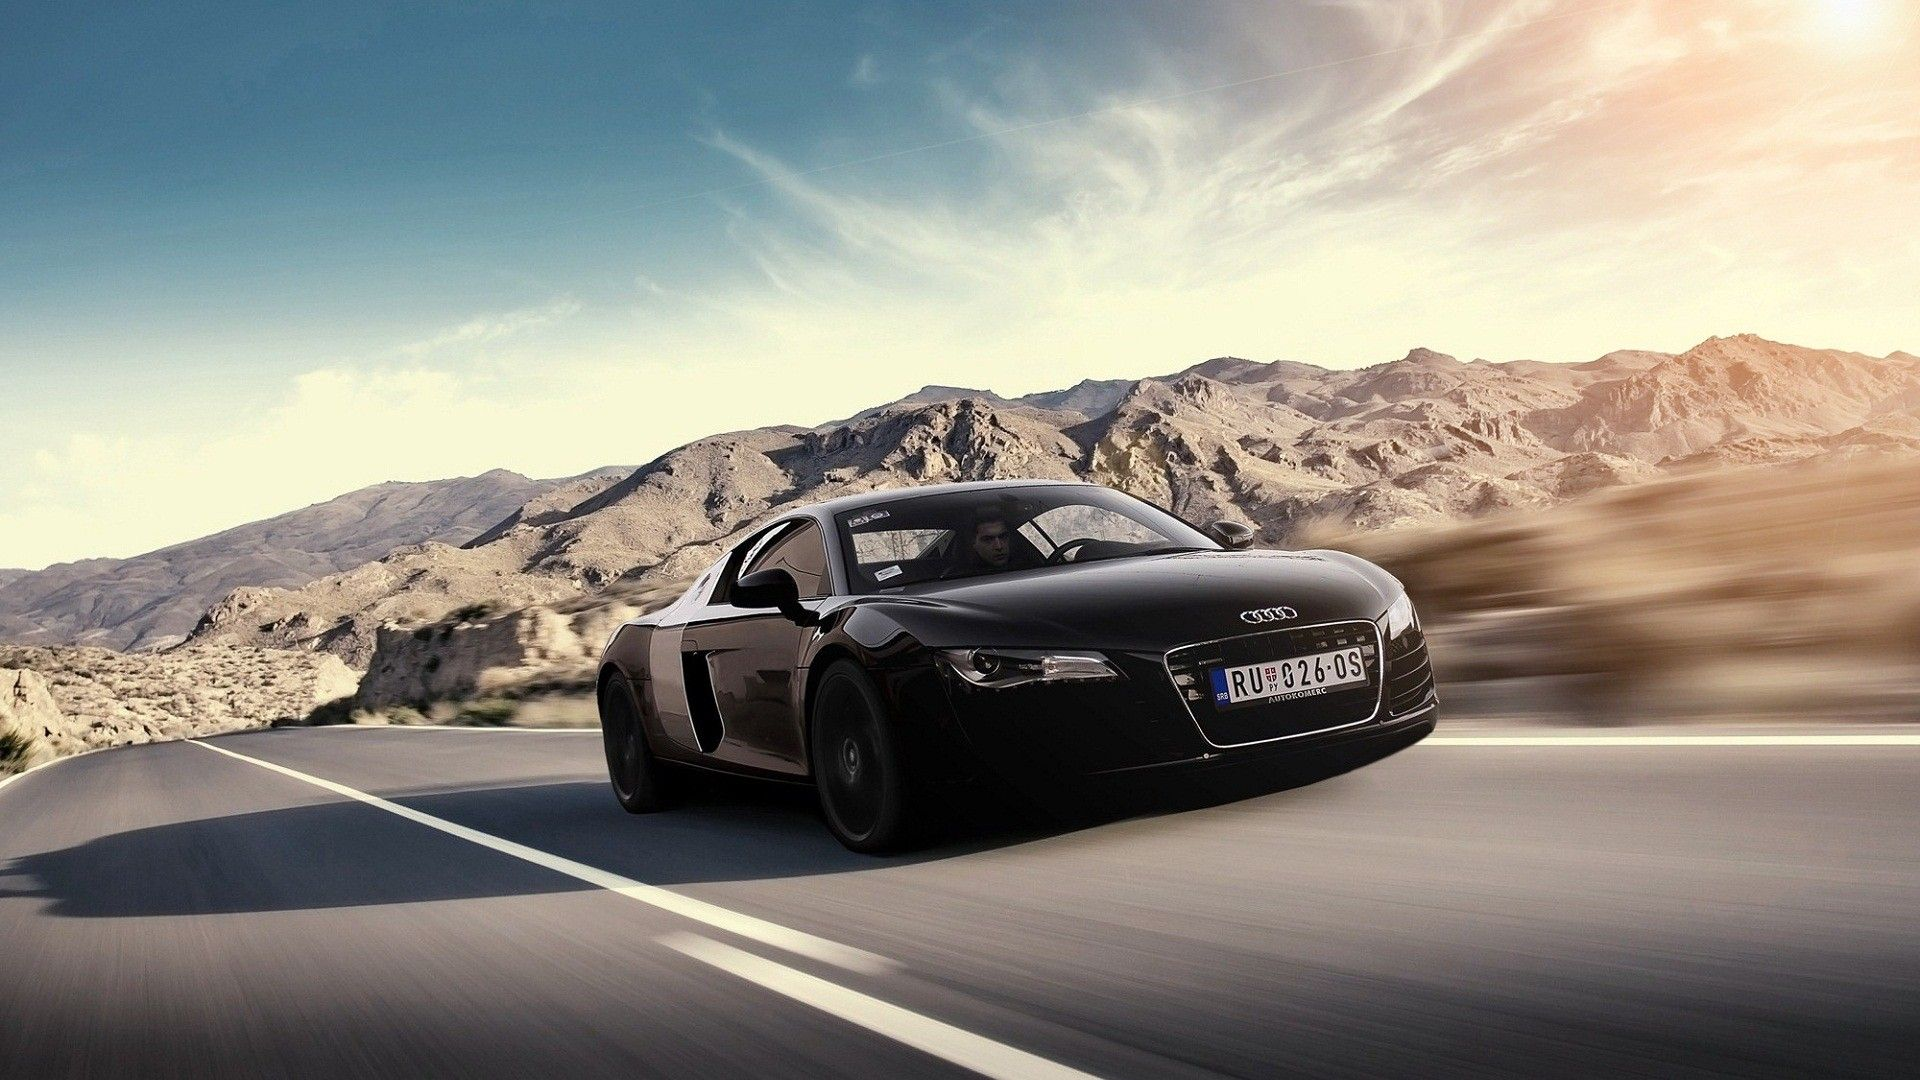 Collection of audi wallpaper in 4k 5k and mobile resolutions. Audi R8 Wallpapers Top Free Audi R8 Backgrounds Wallpaperaccess